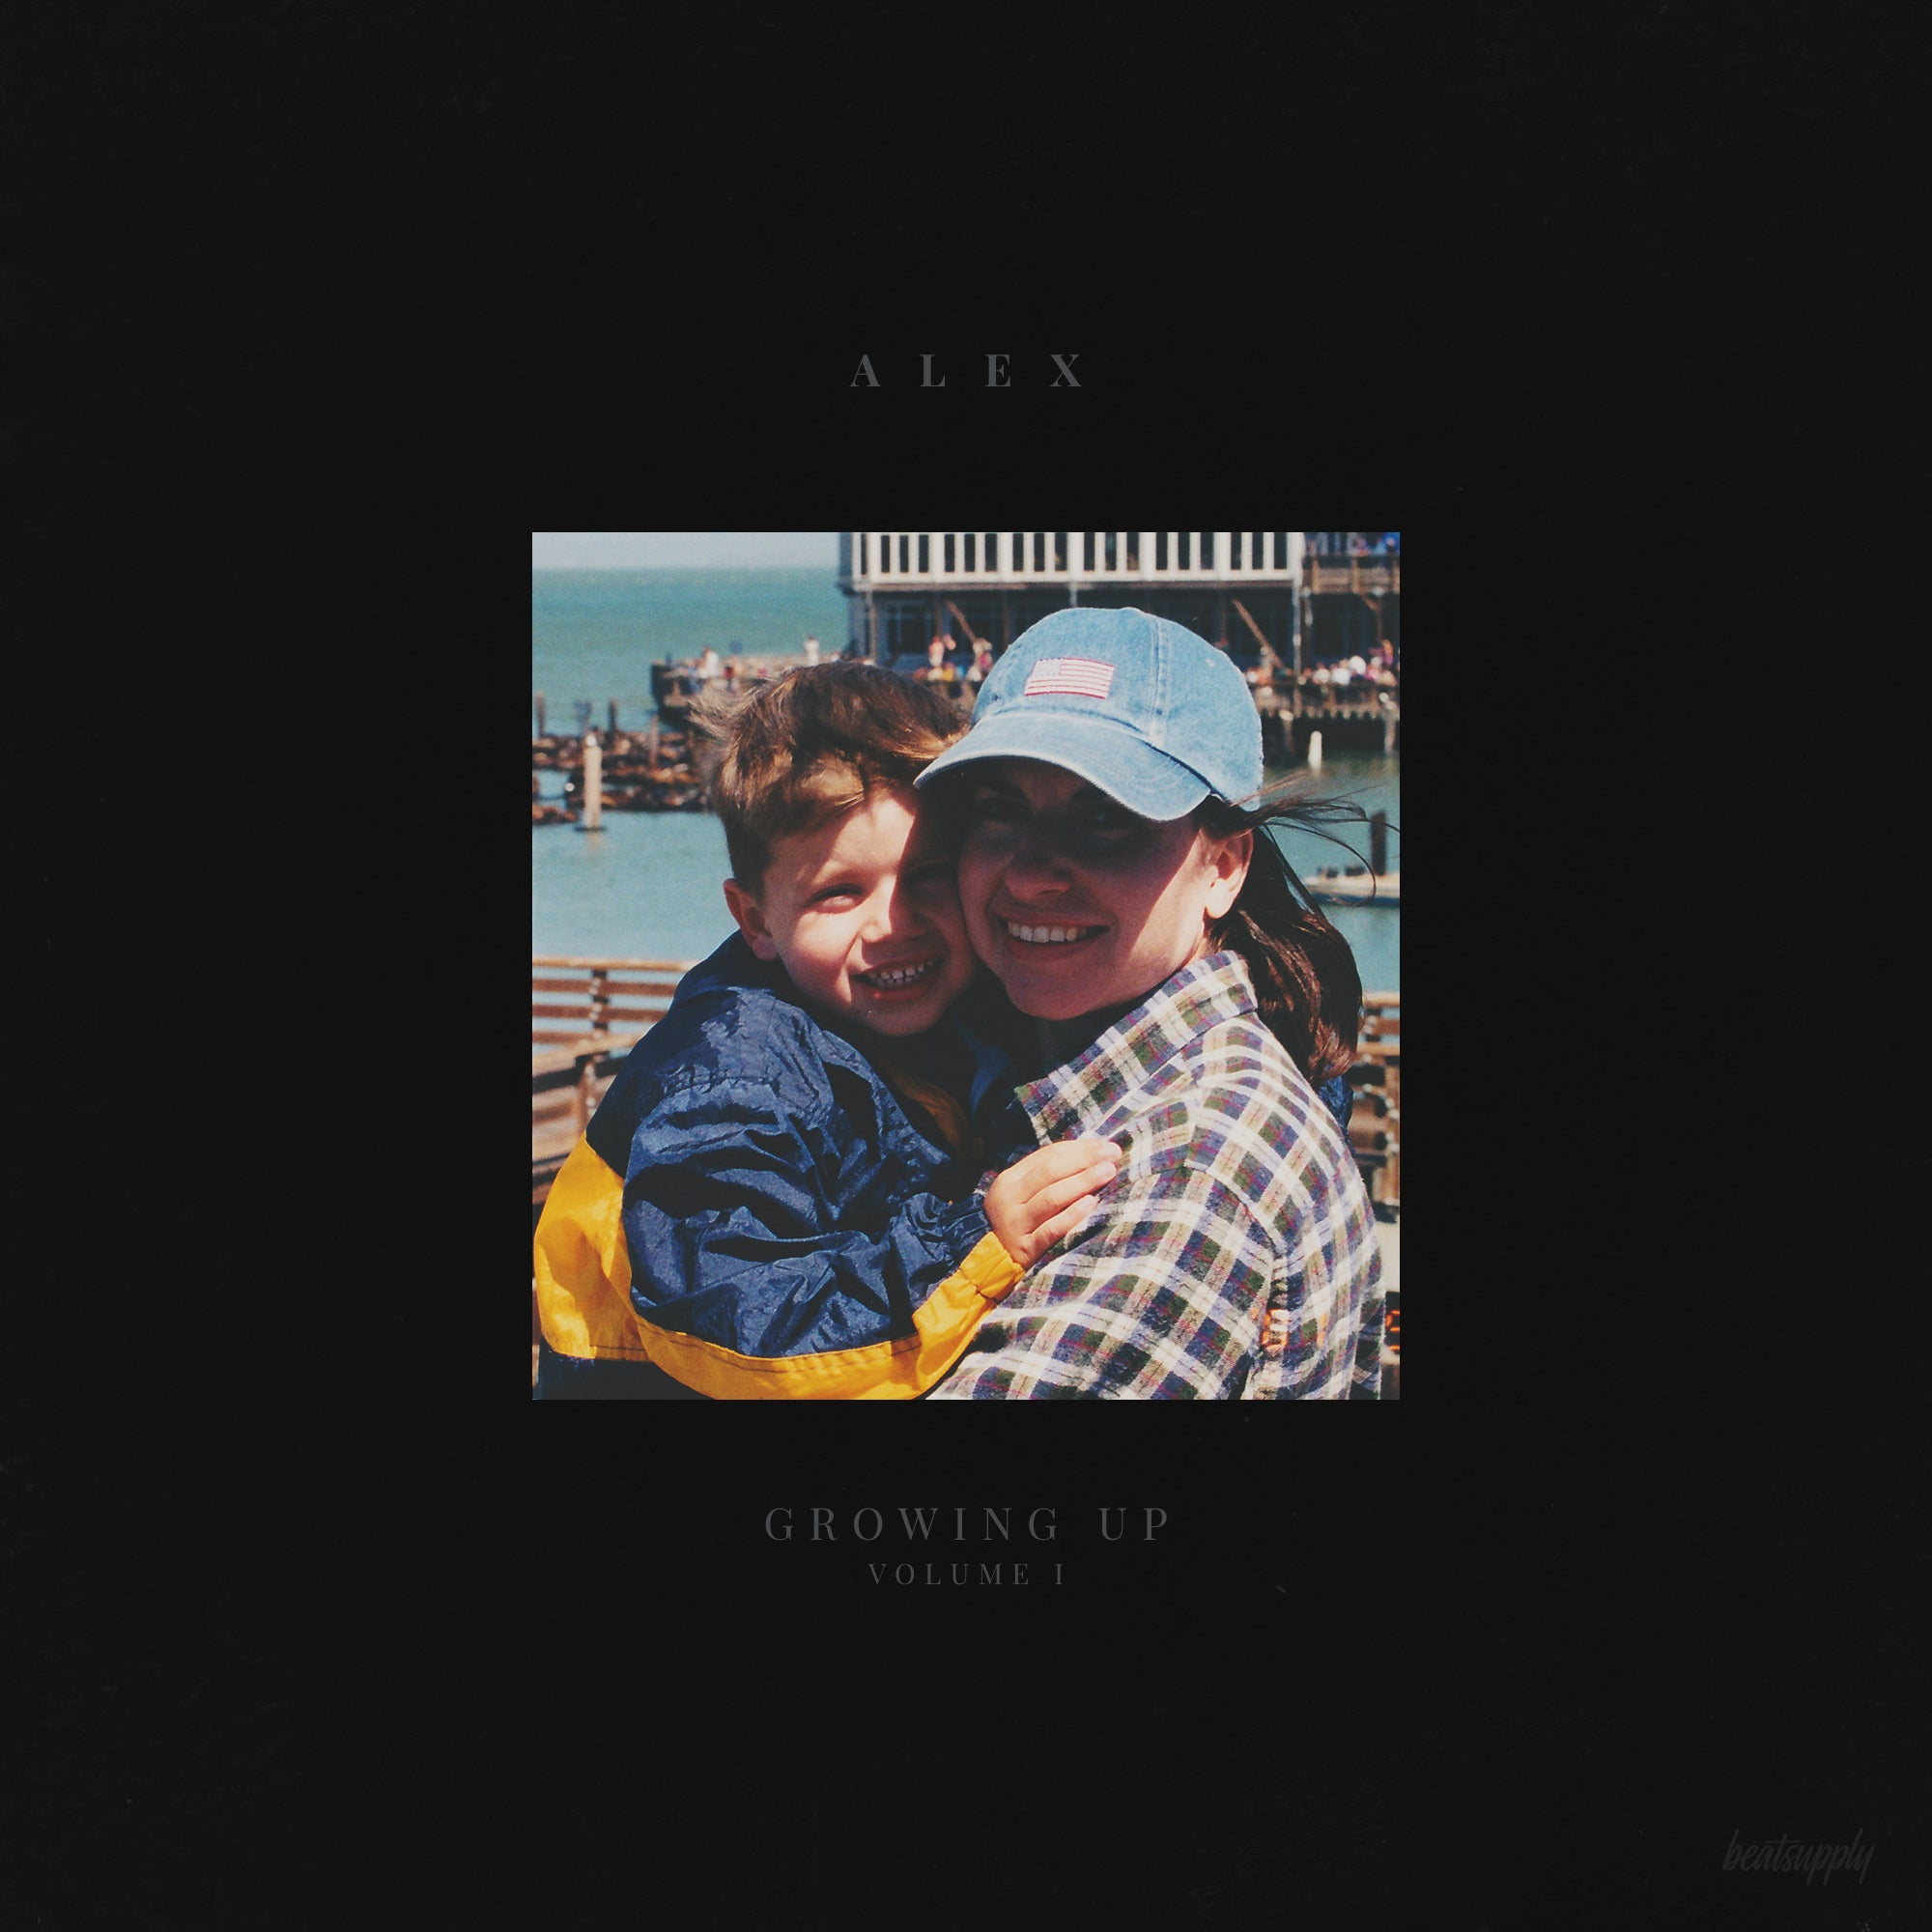 A L E X - Growing Up, Vol. 1